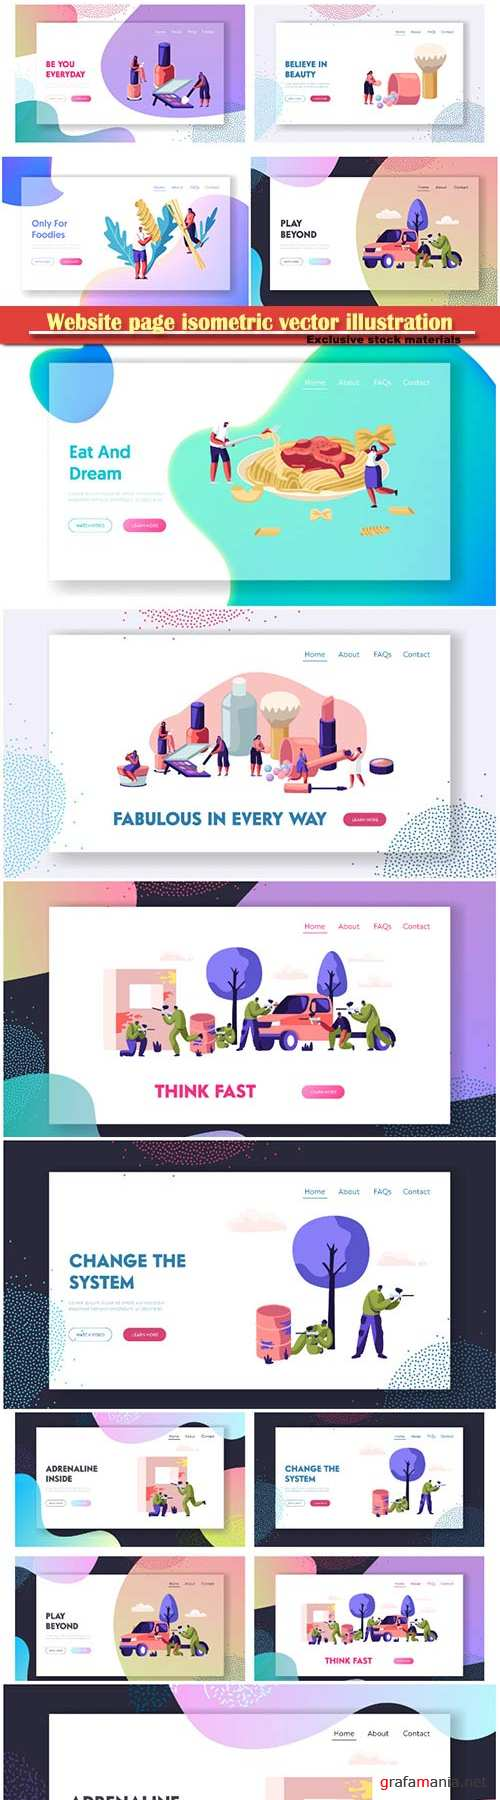 Website page isometric vector illustration, flat banner